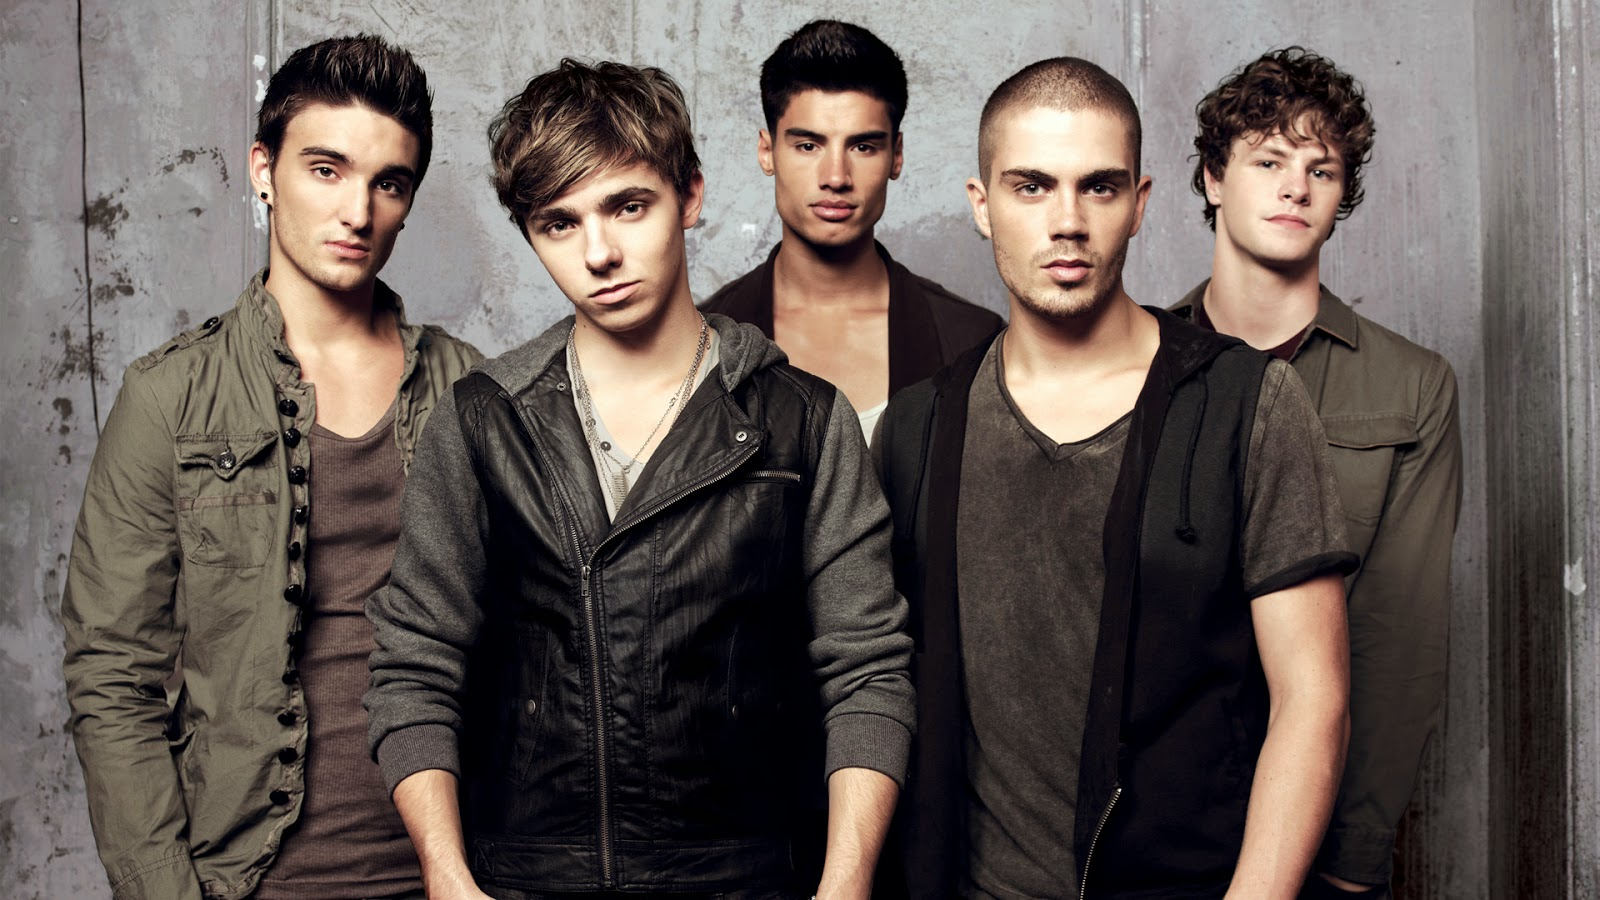 The Wanted 2014 Wallpaper The Wanted Are NO MORE...